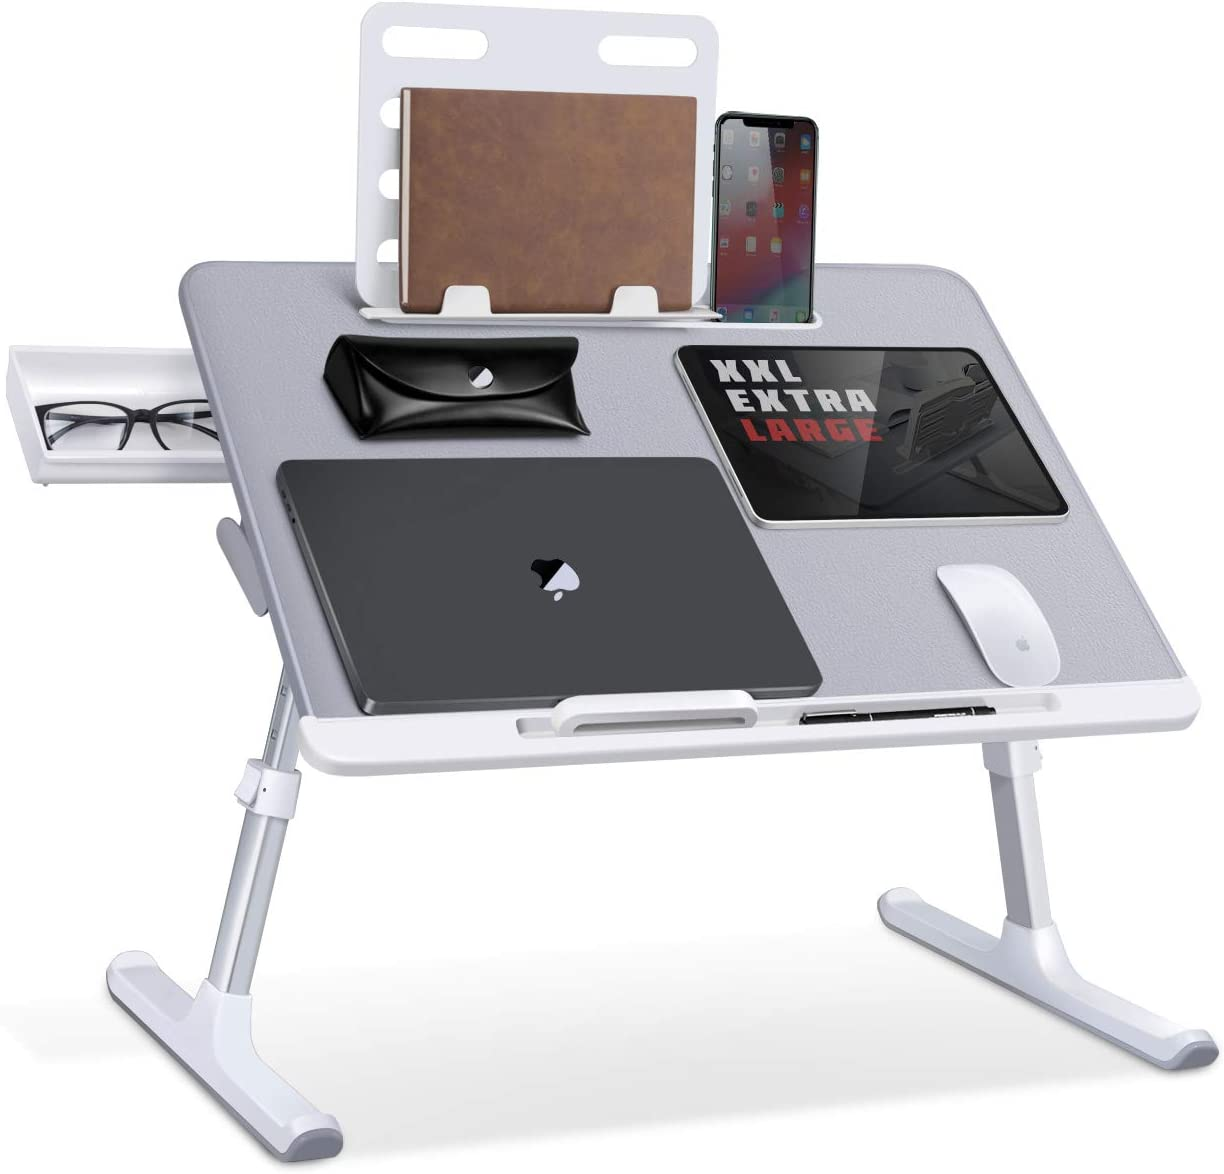 SAIJI Laptop Bed Tray Desk, Adjustable Laptop Stand for Bed, Foldable Laptop Table with Storage Drawer for Eating, Working, Writing, Gaming, Drawing (Gray, X-Large)